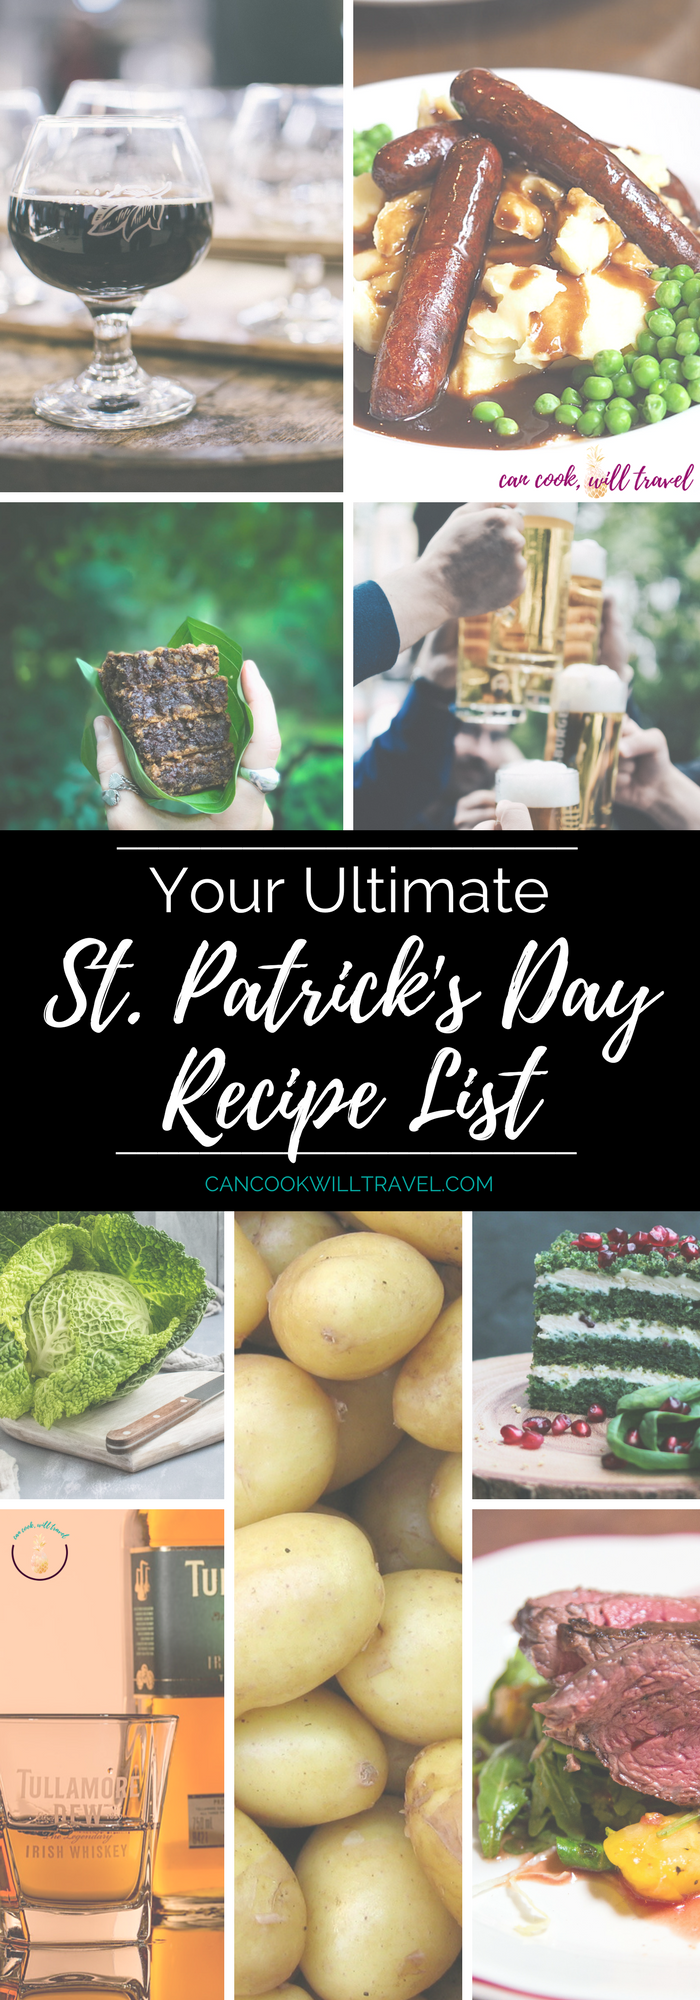 Ultimate St. Patrick's Day Recipes List_Tall